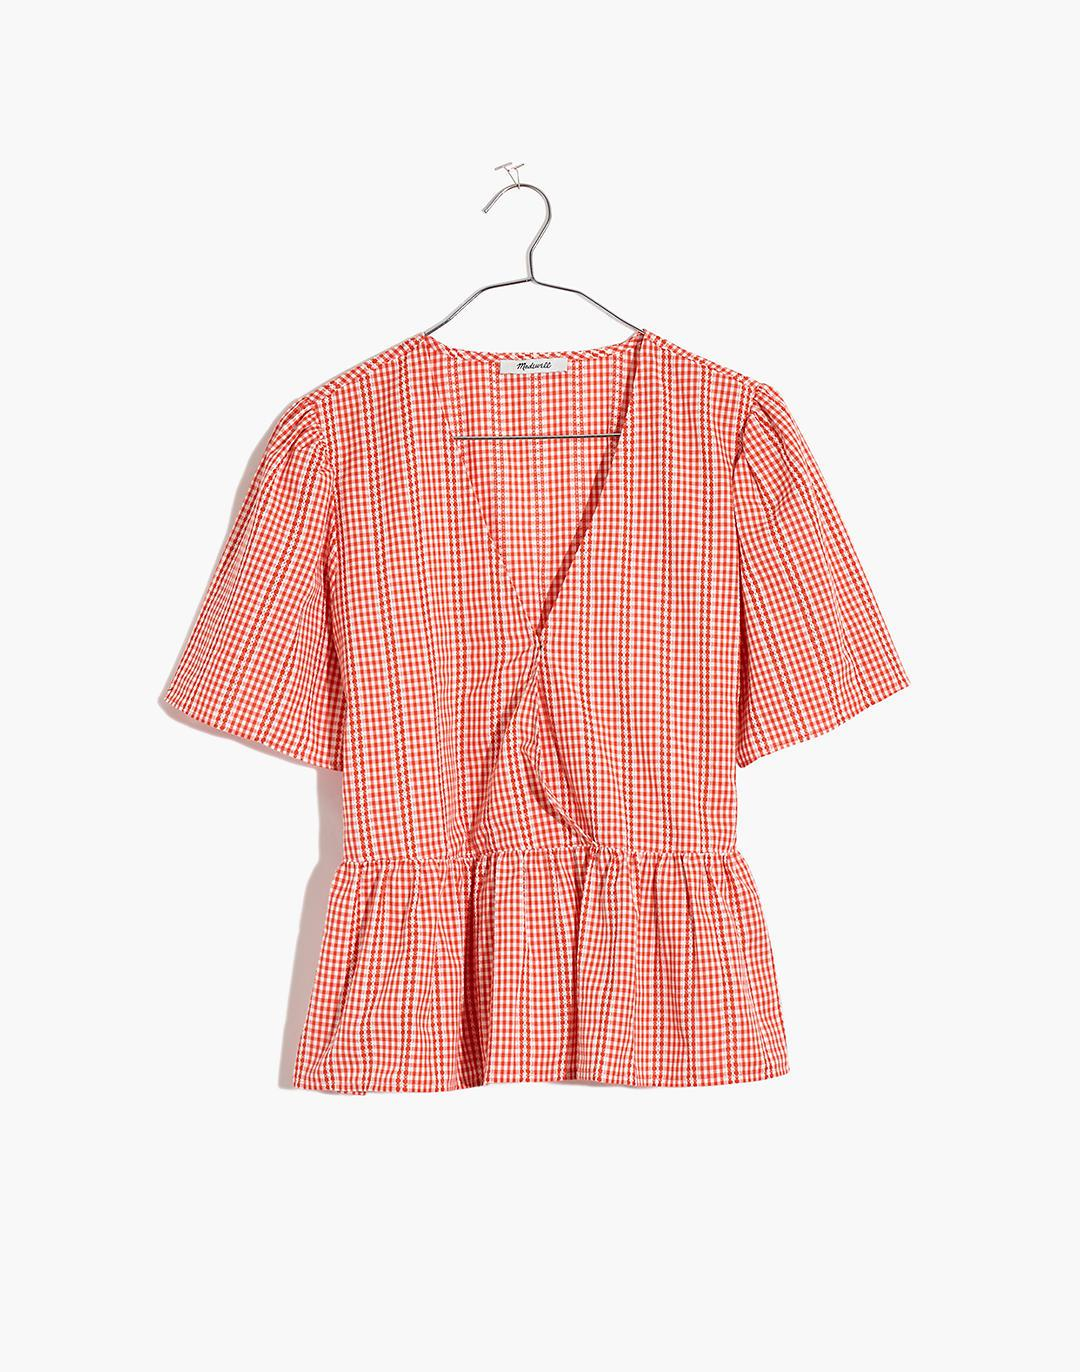 Crossover Peplum Top in Textured Gingham Check 3